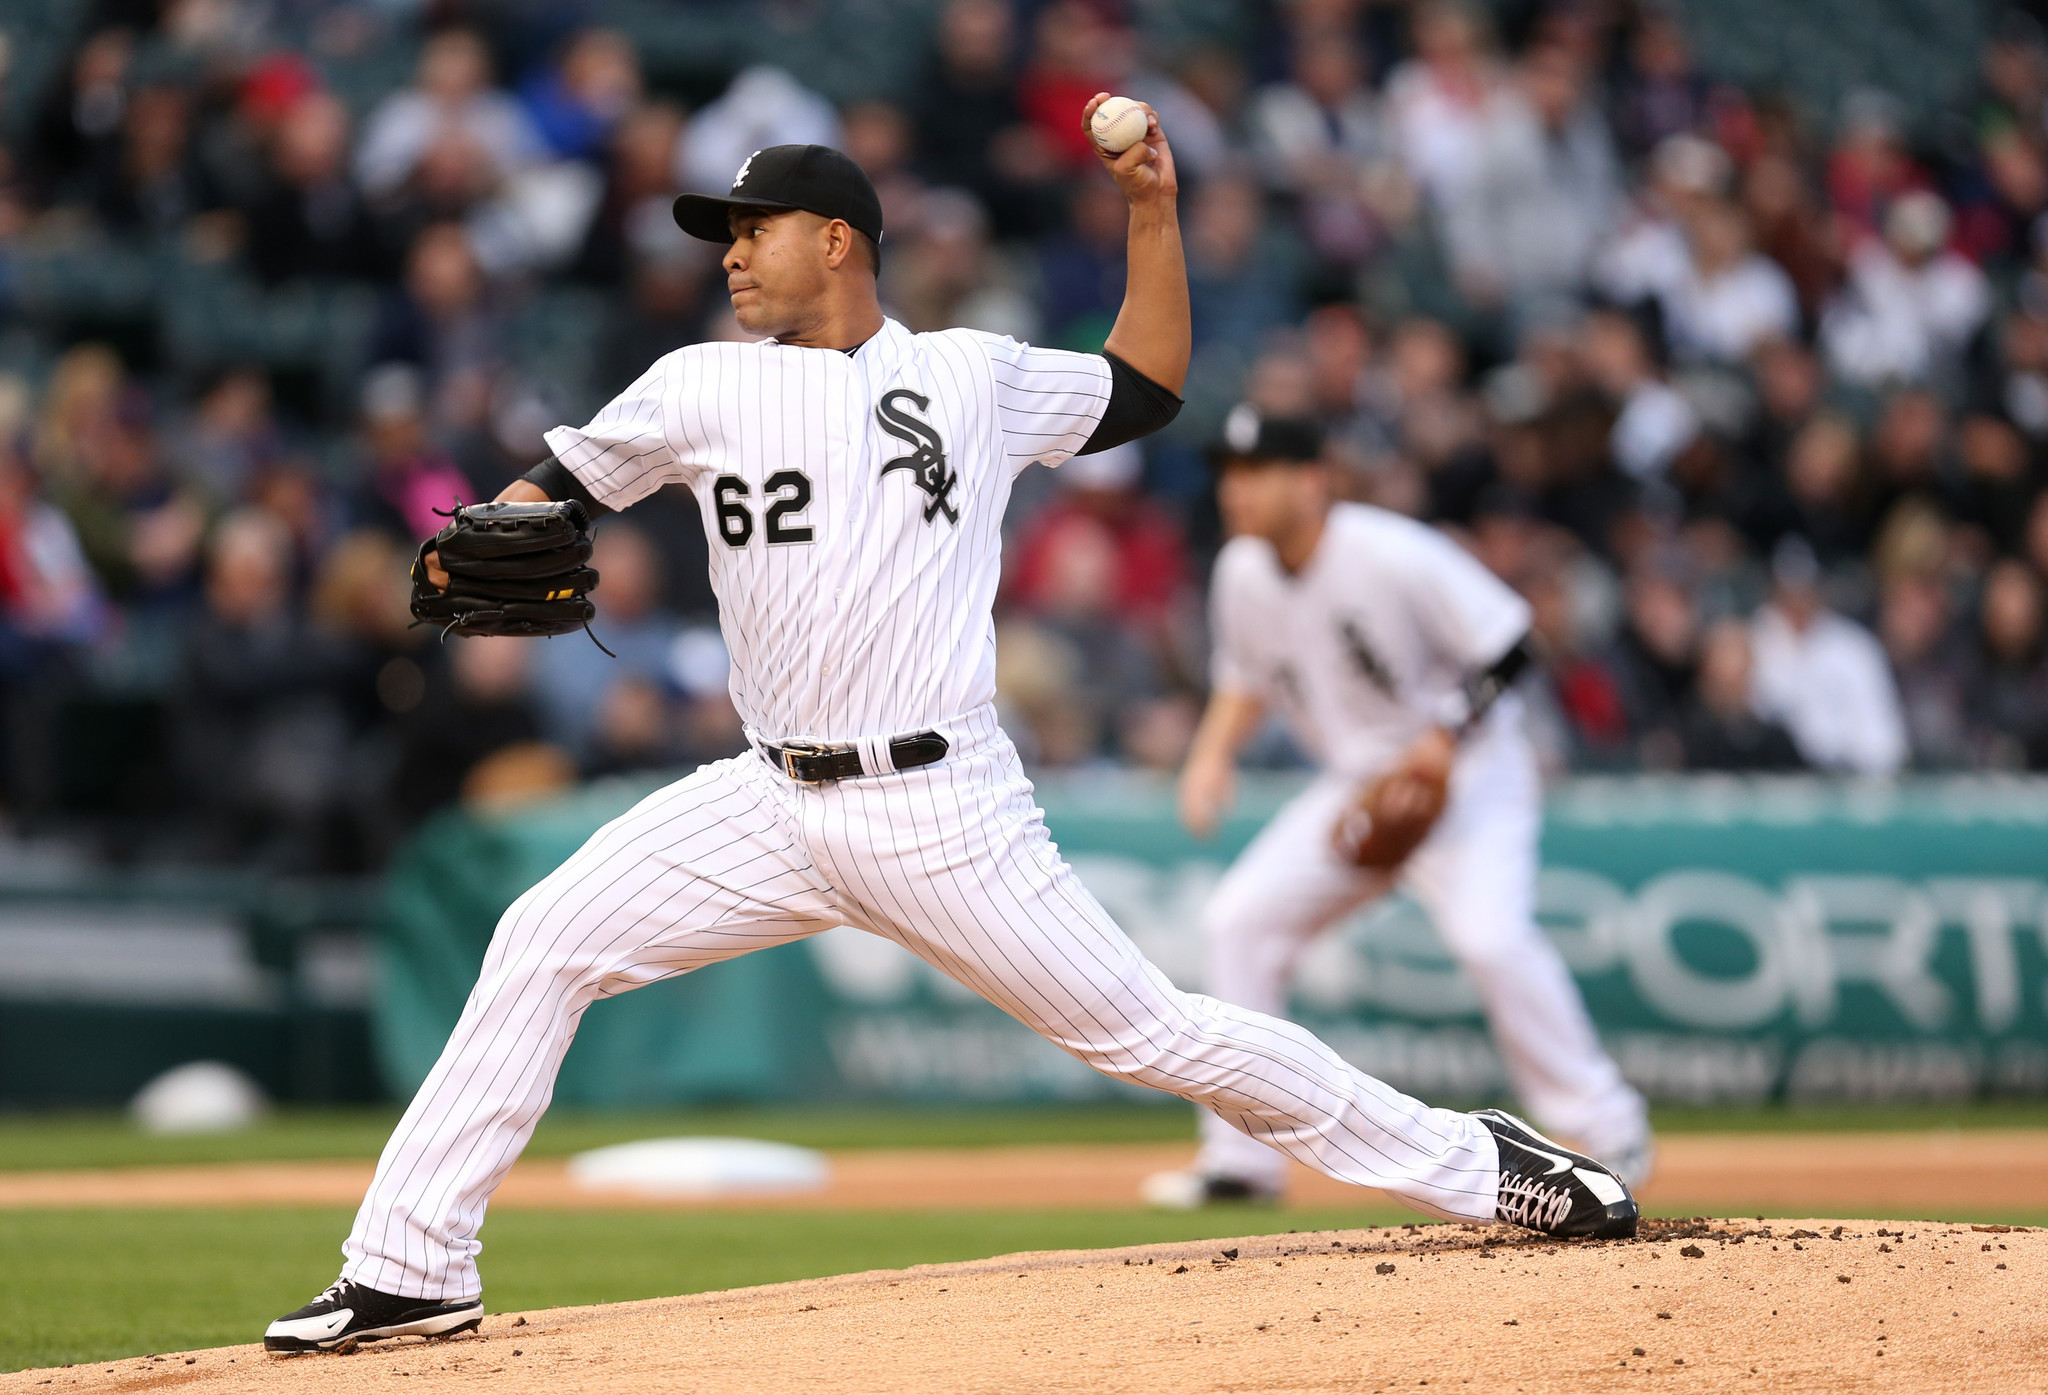 Ct-white-sox-red-sox-spt-0504-20160503